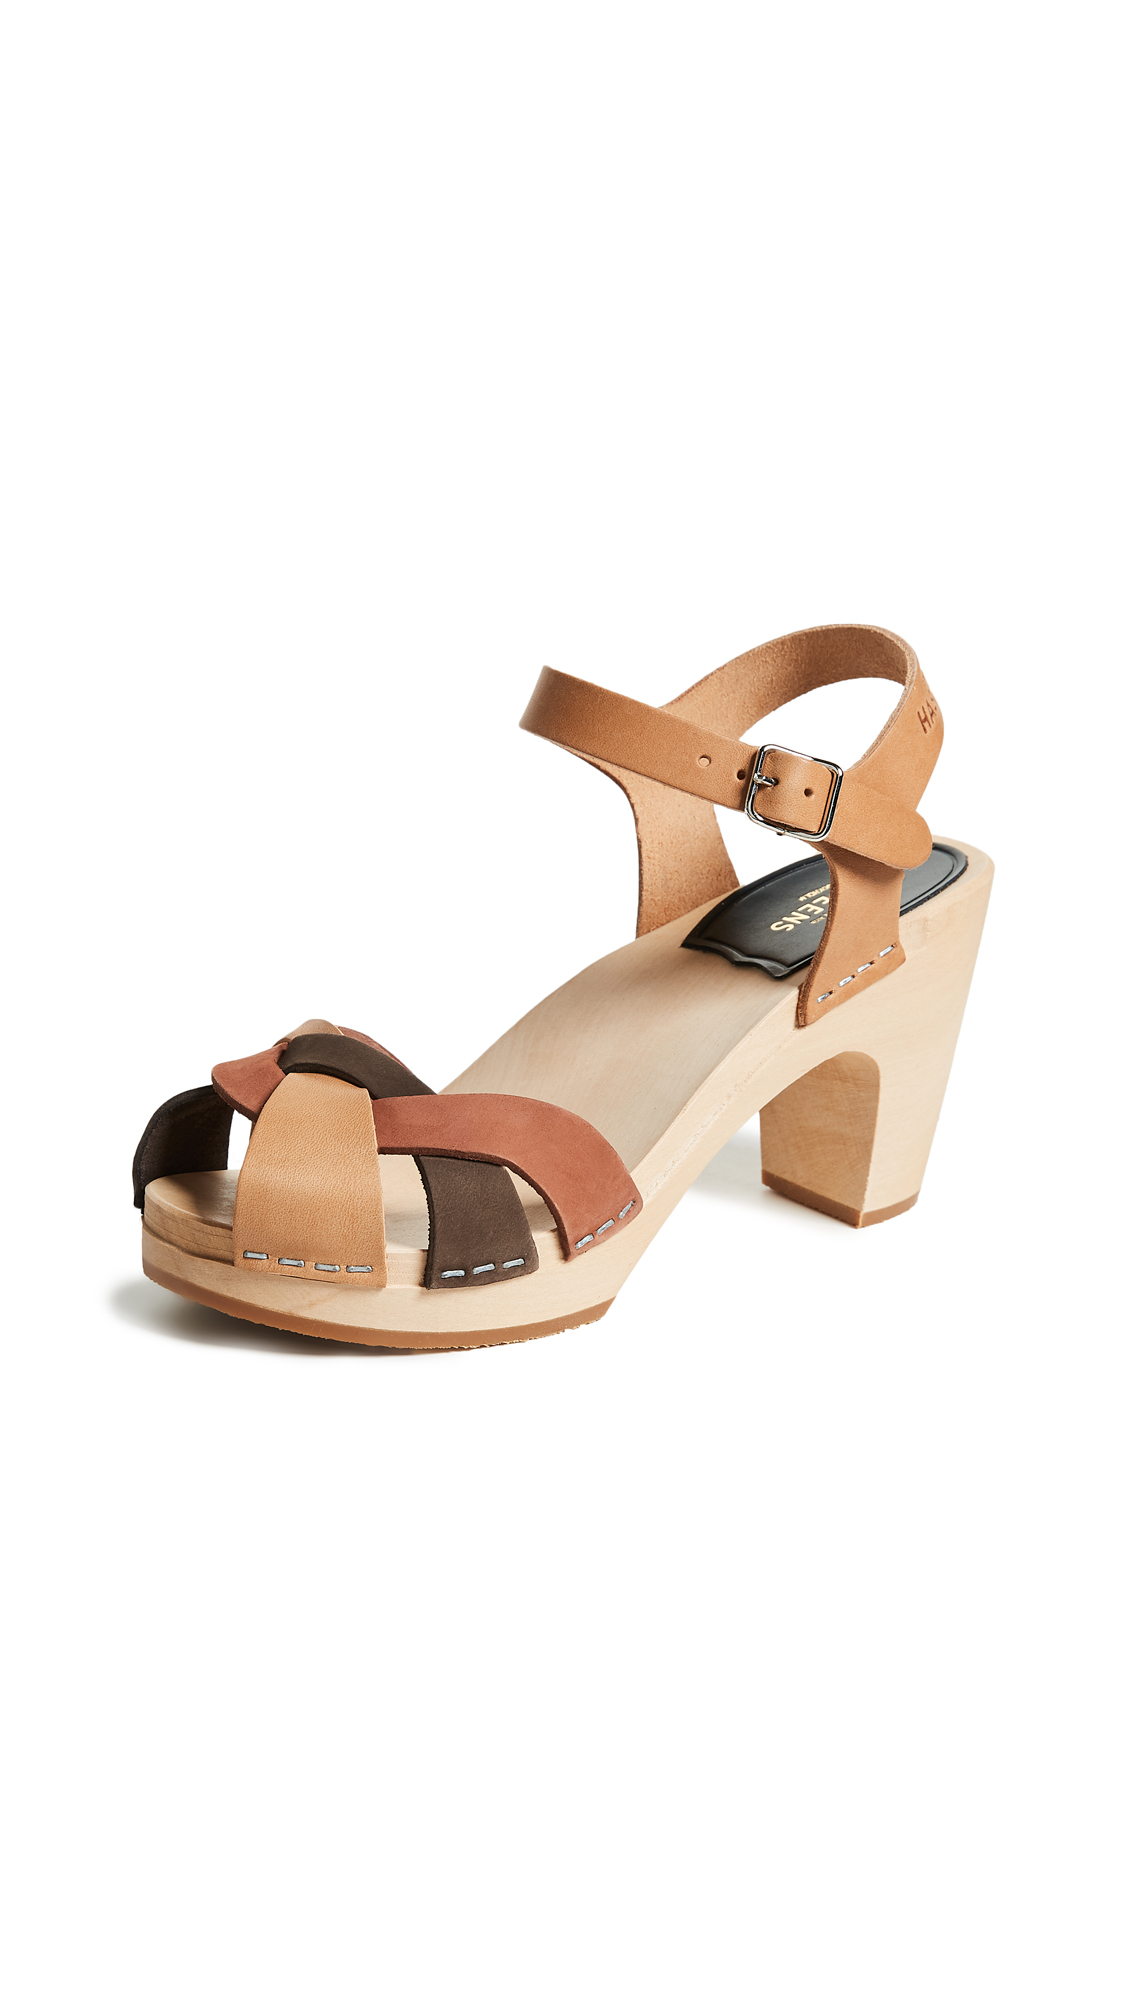 Swedish Hasbeens Kringlan Block Heel Sandals - Brown